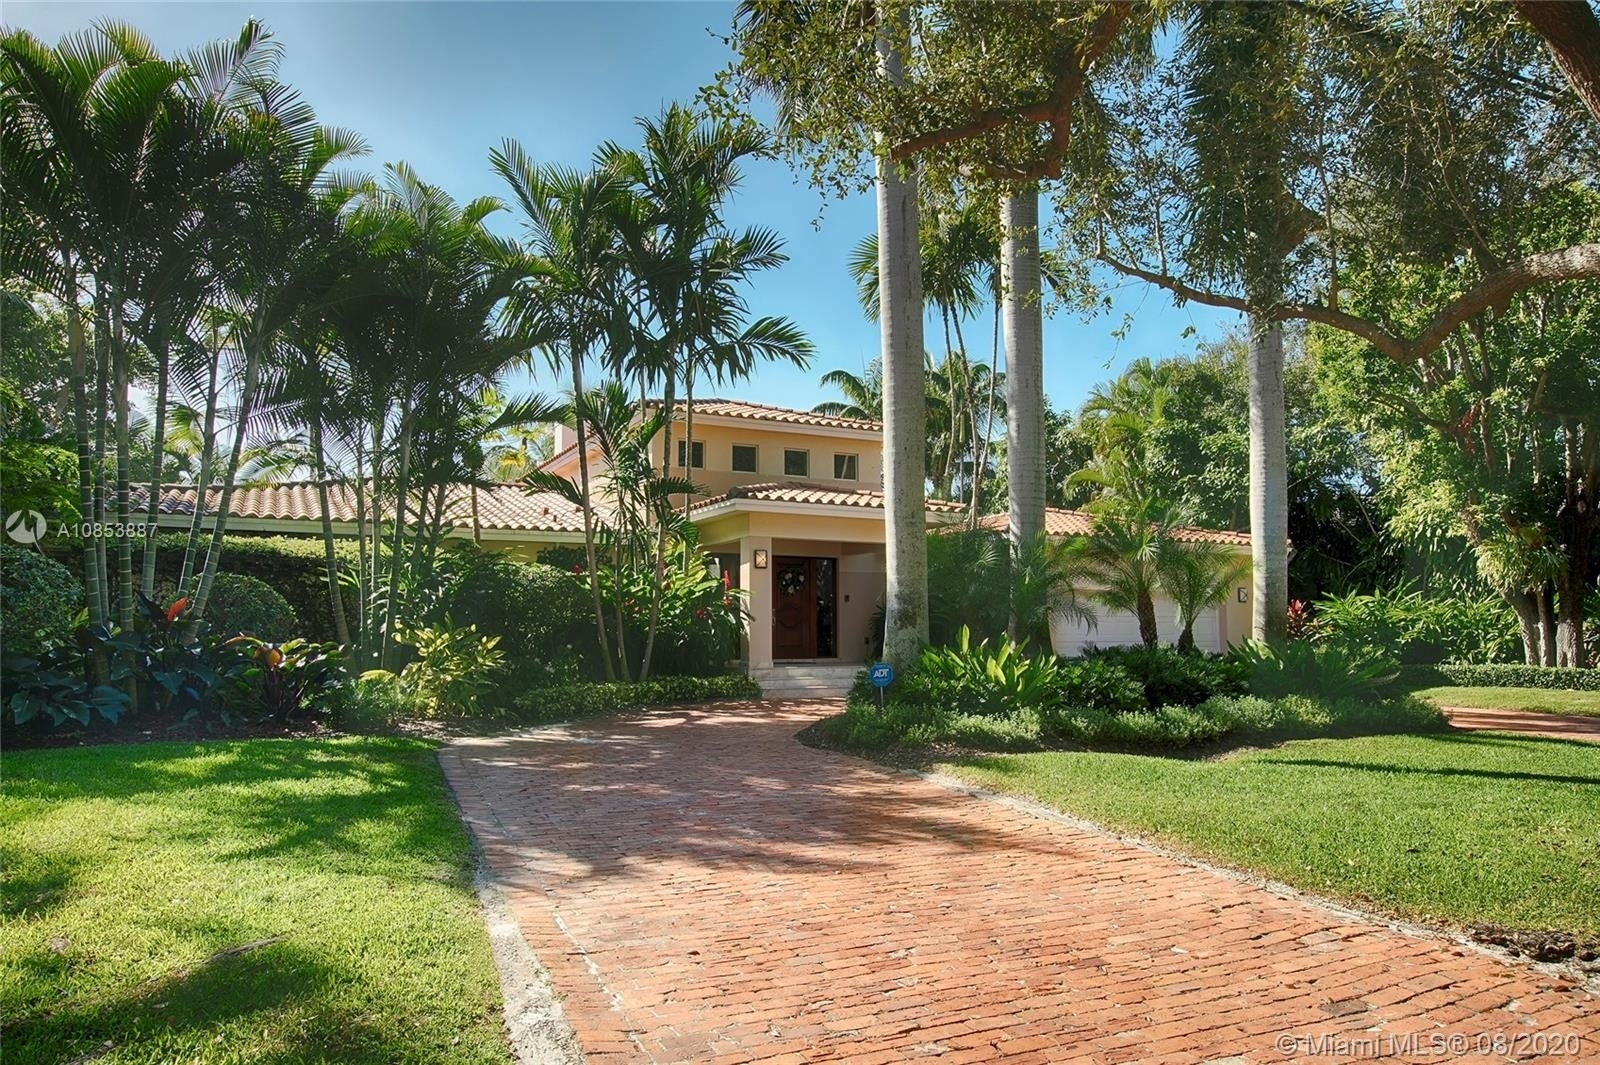 Property at Country Club Section, Coral Gables, FL 33146